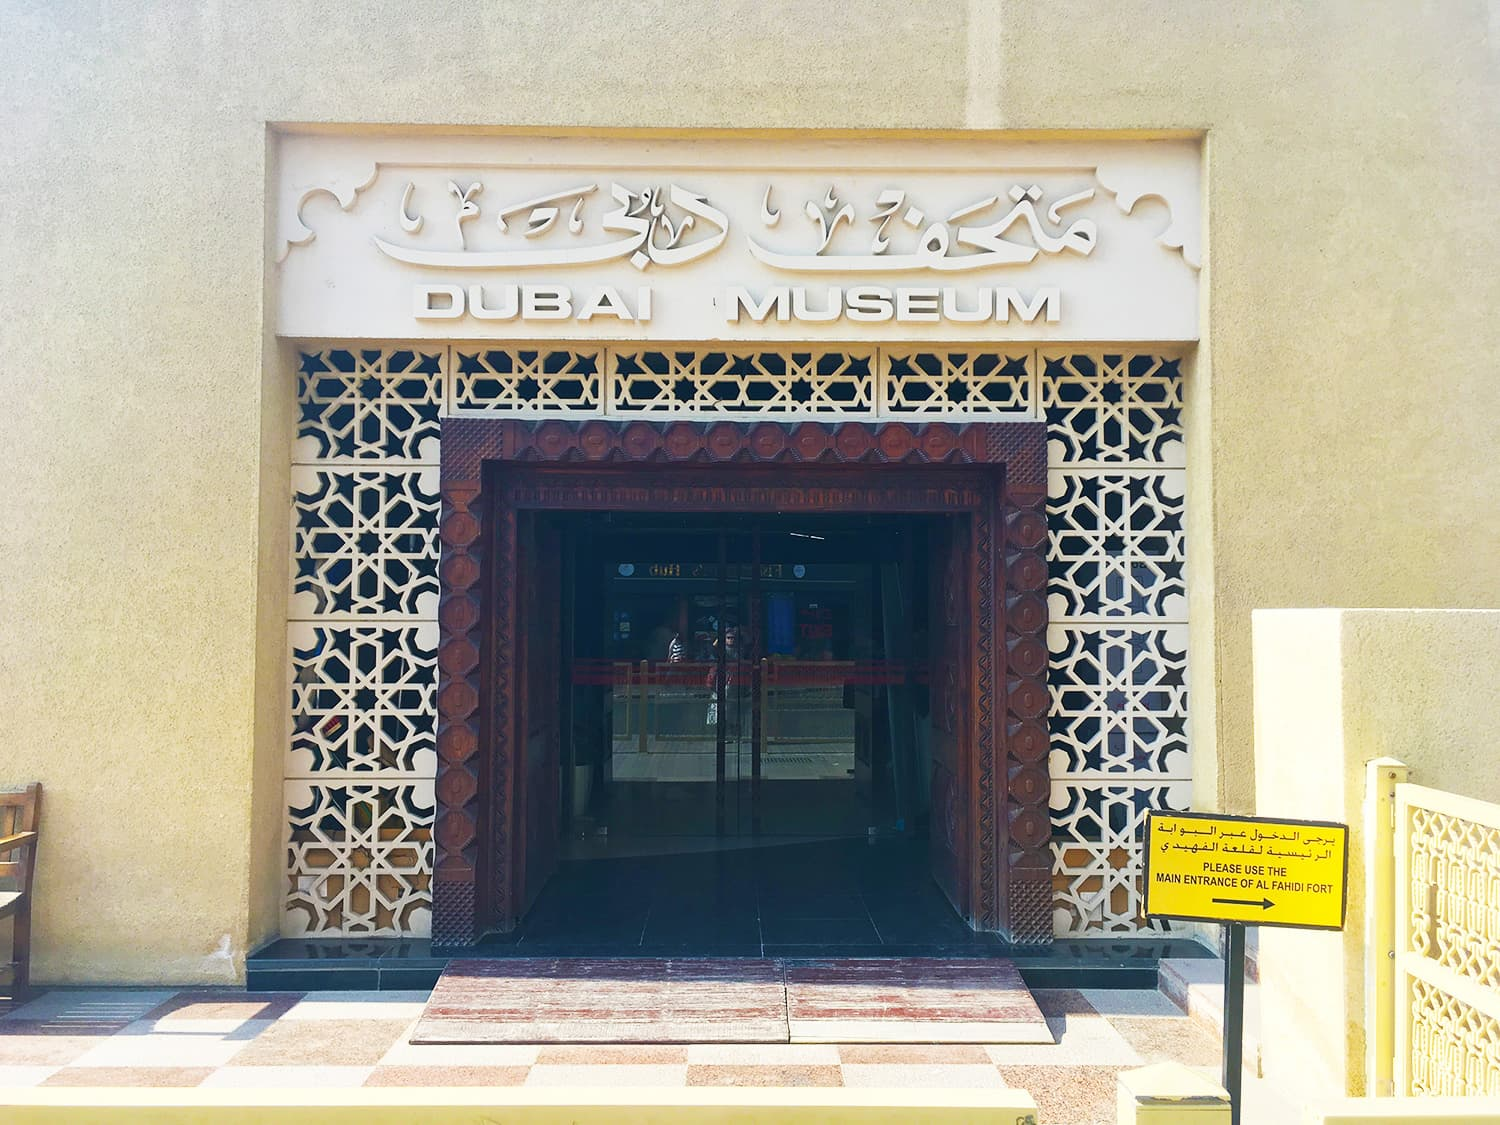 The entrance of the Dubai Museum.